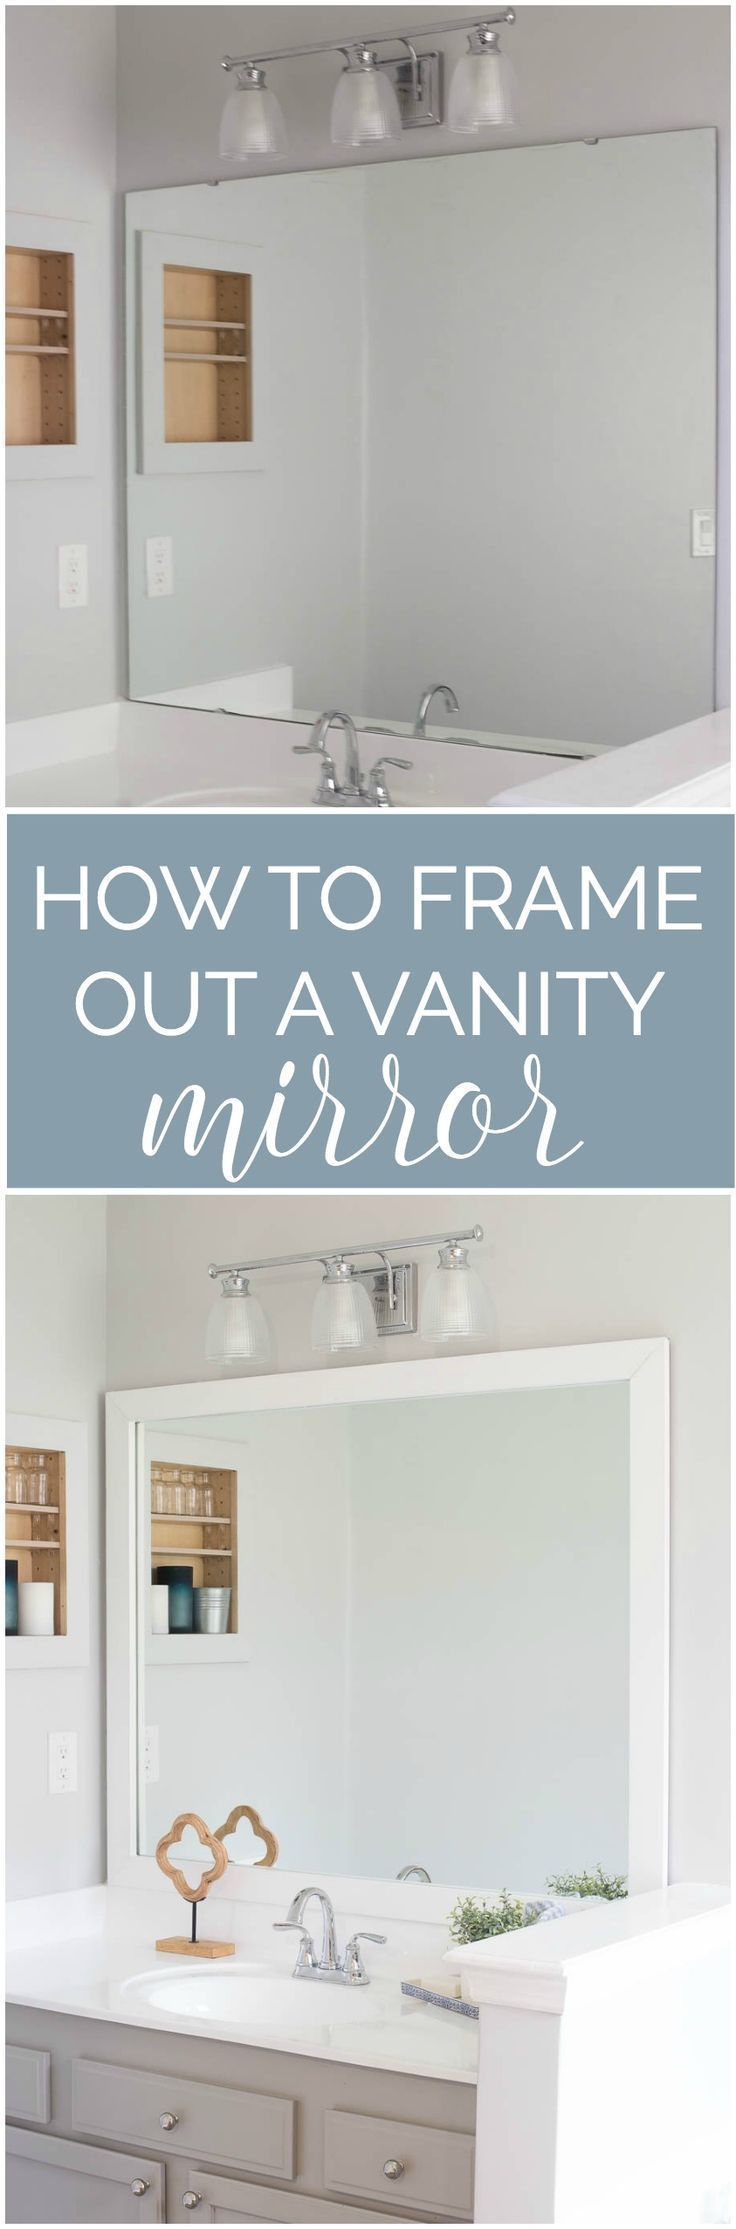 How to frame out your vanity mirror. $40 for a custom looking bathroom mirror.